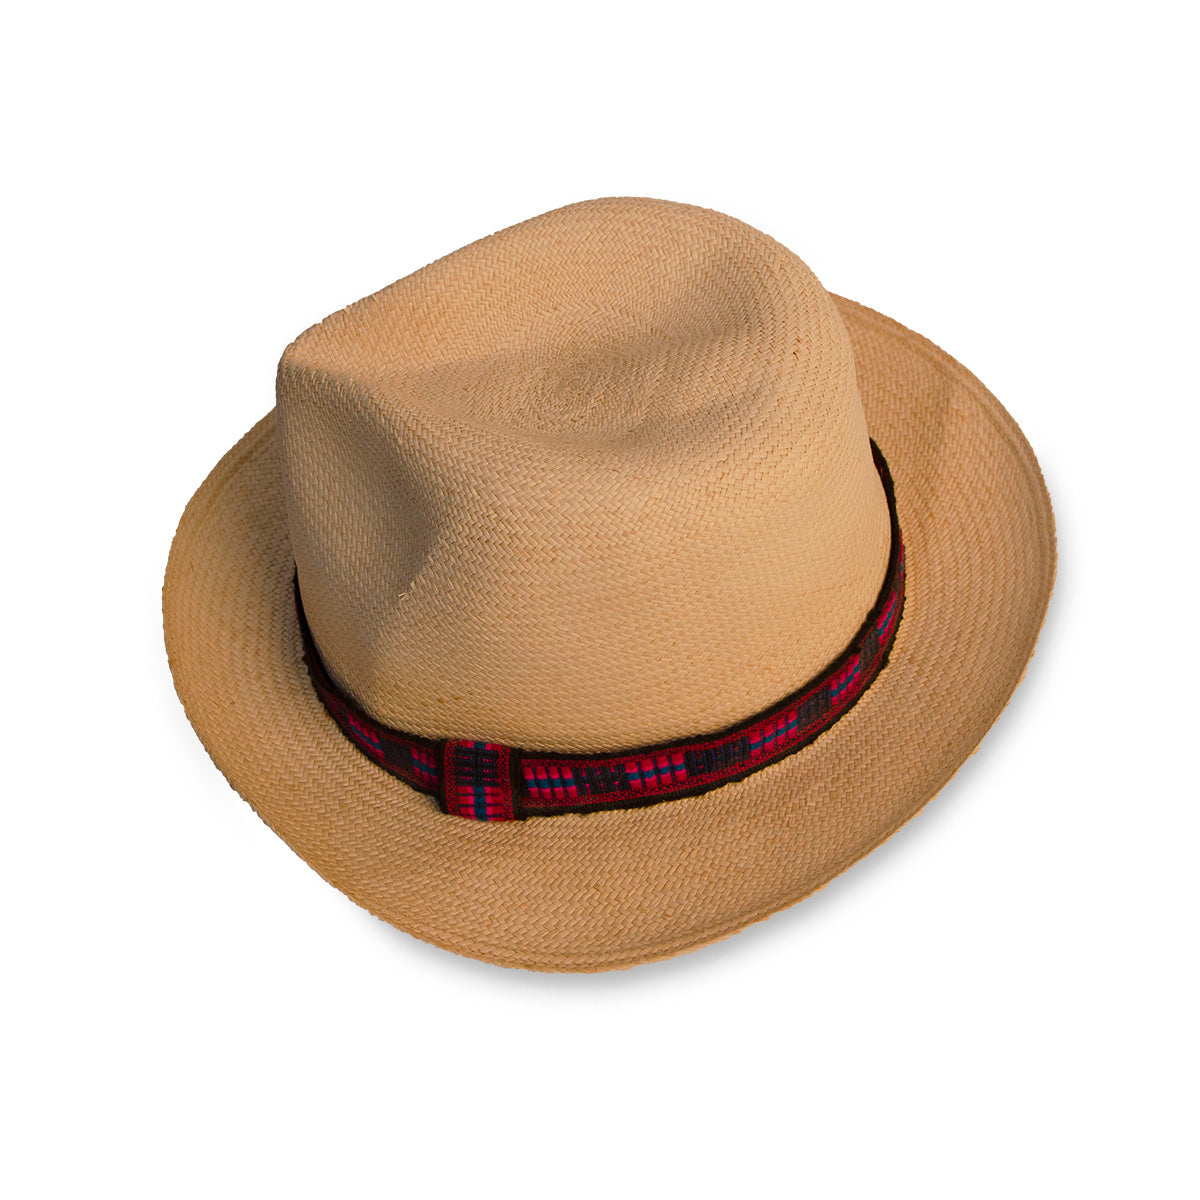 Straw Fedora, Red & Black Hatband 6